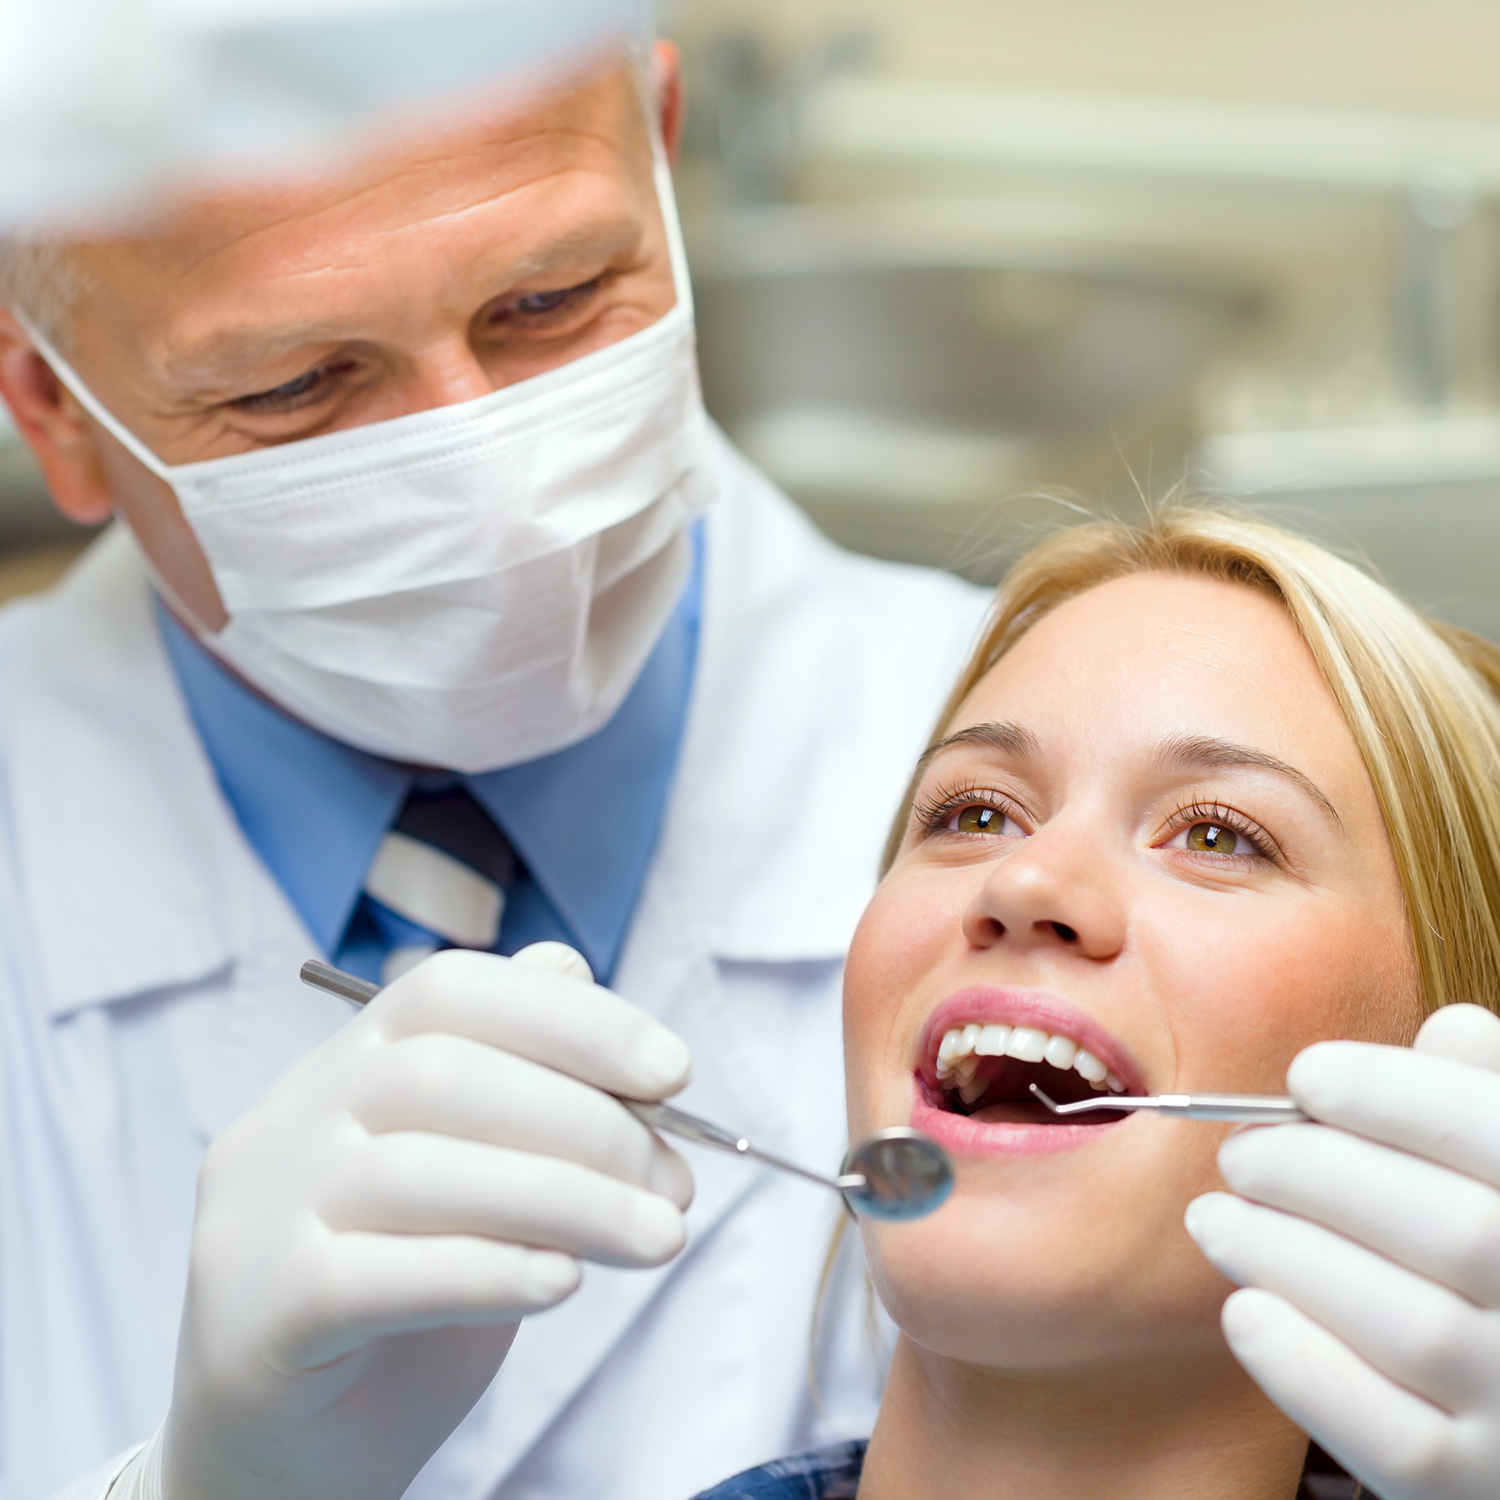 How often do you have to go to the dentist?